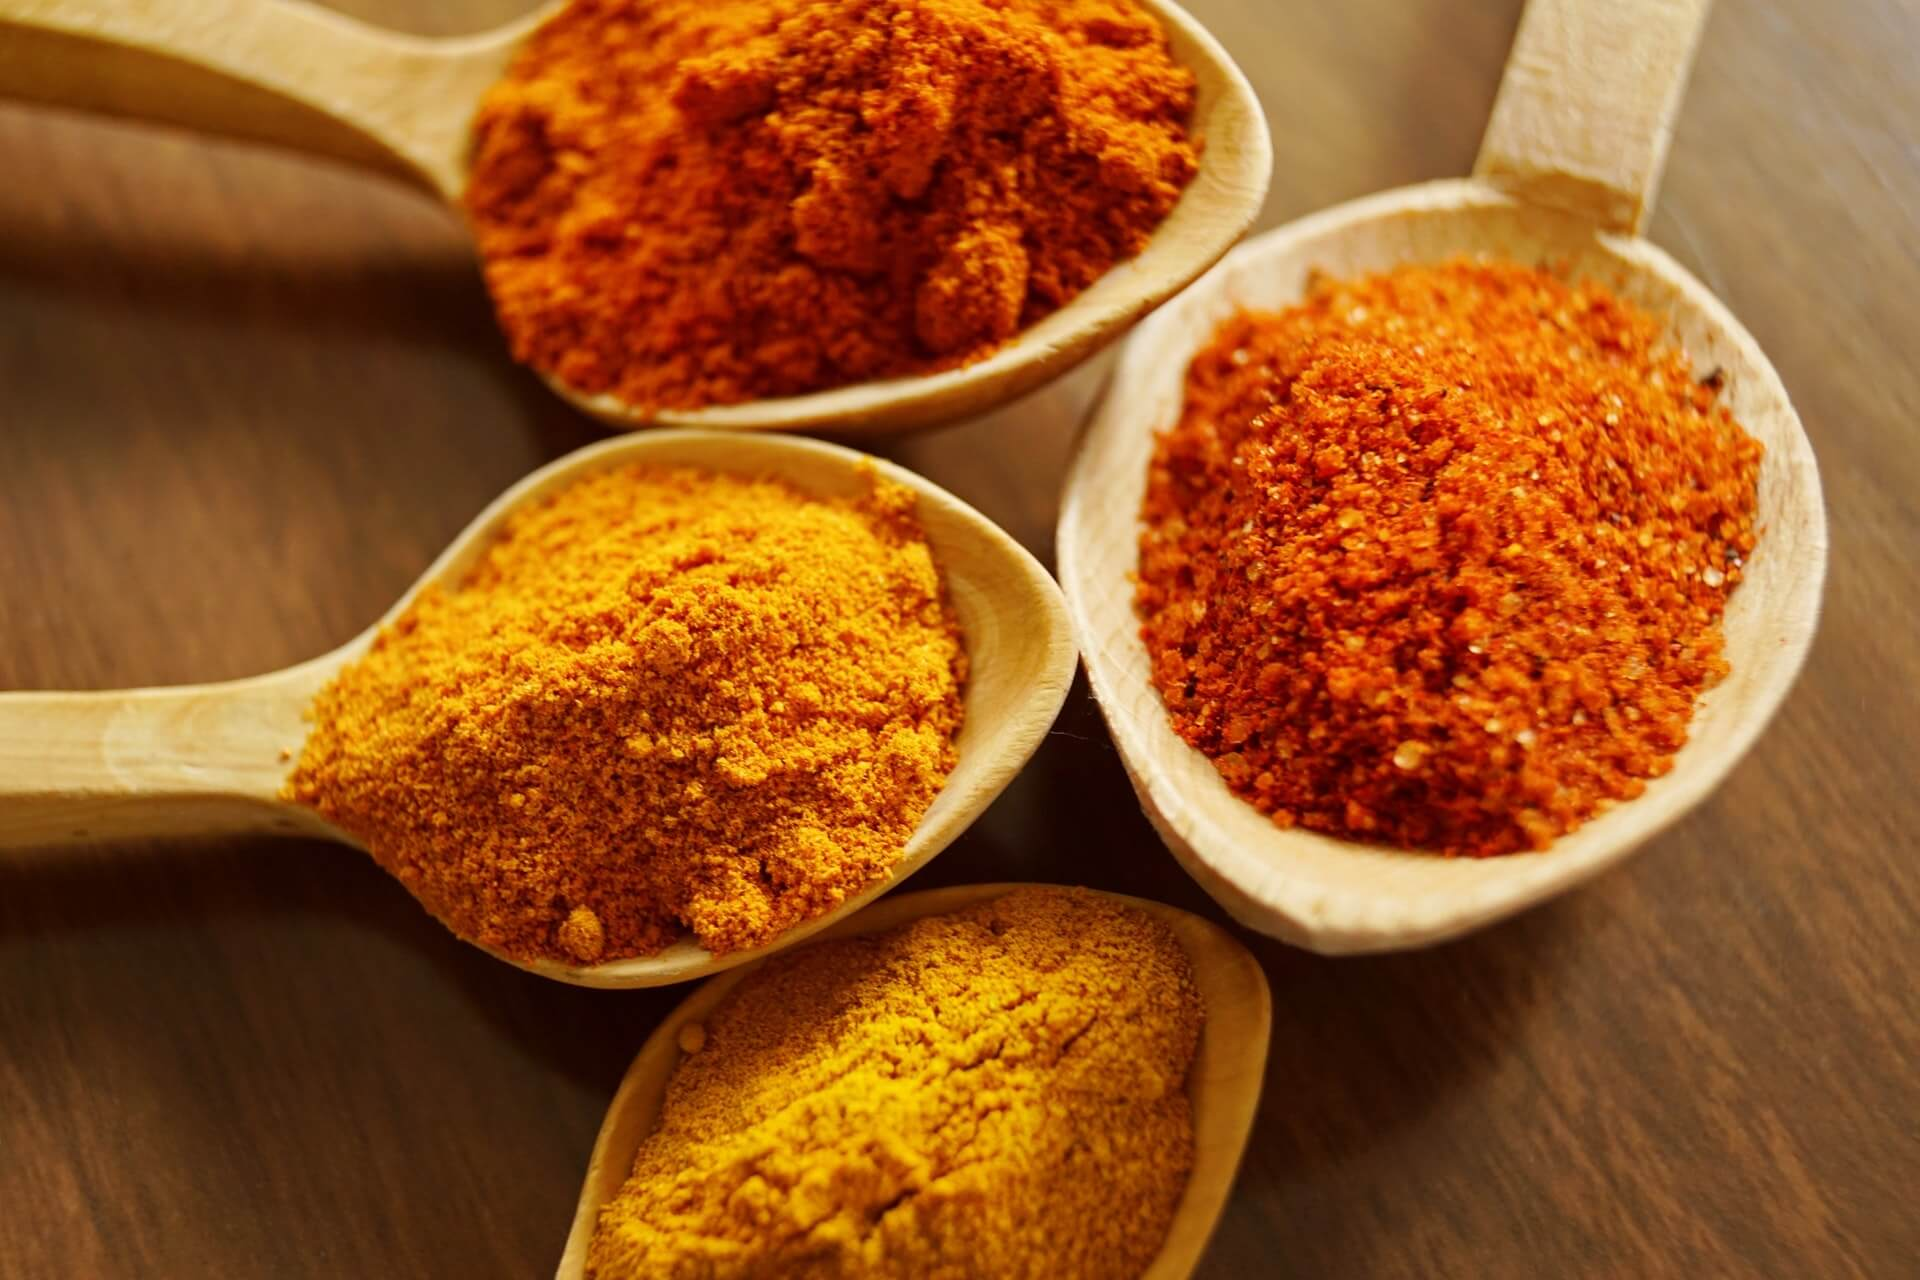 Top 9 Health Benefits Of Curcumin